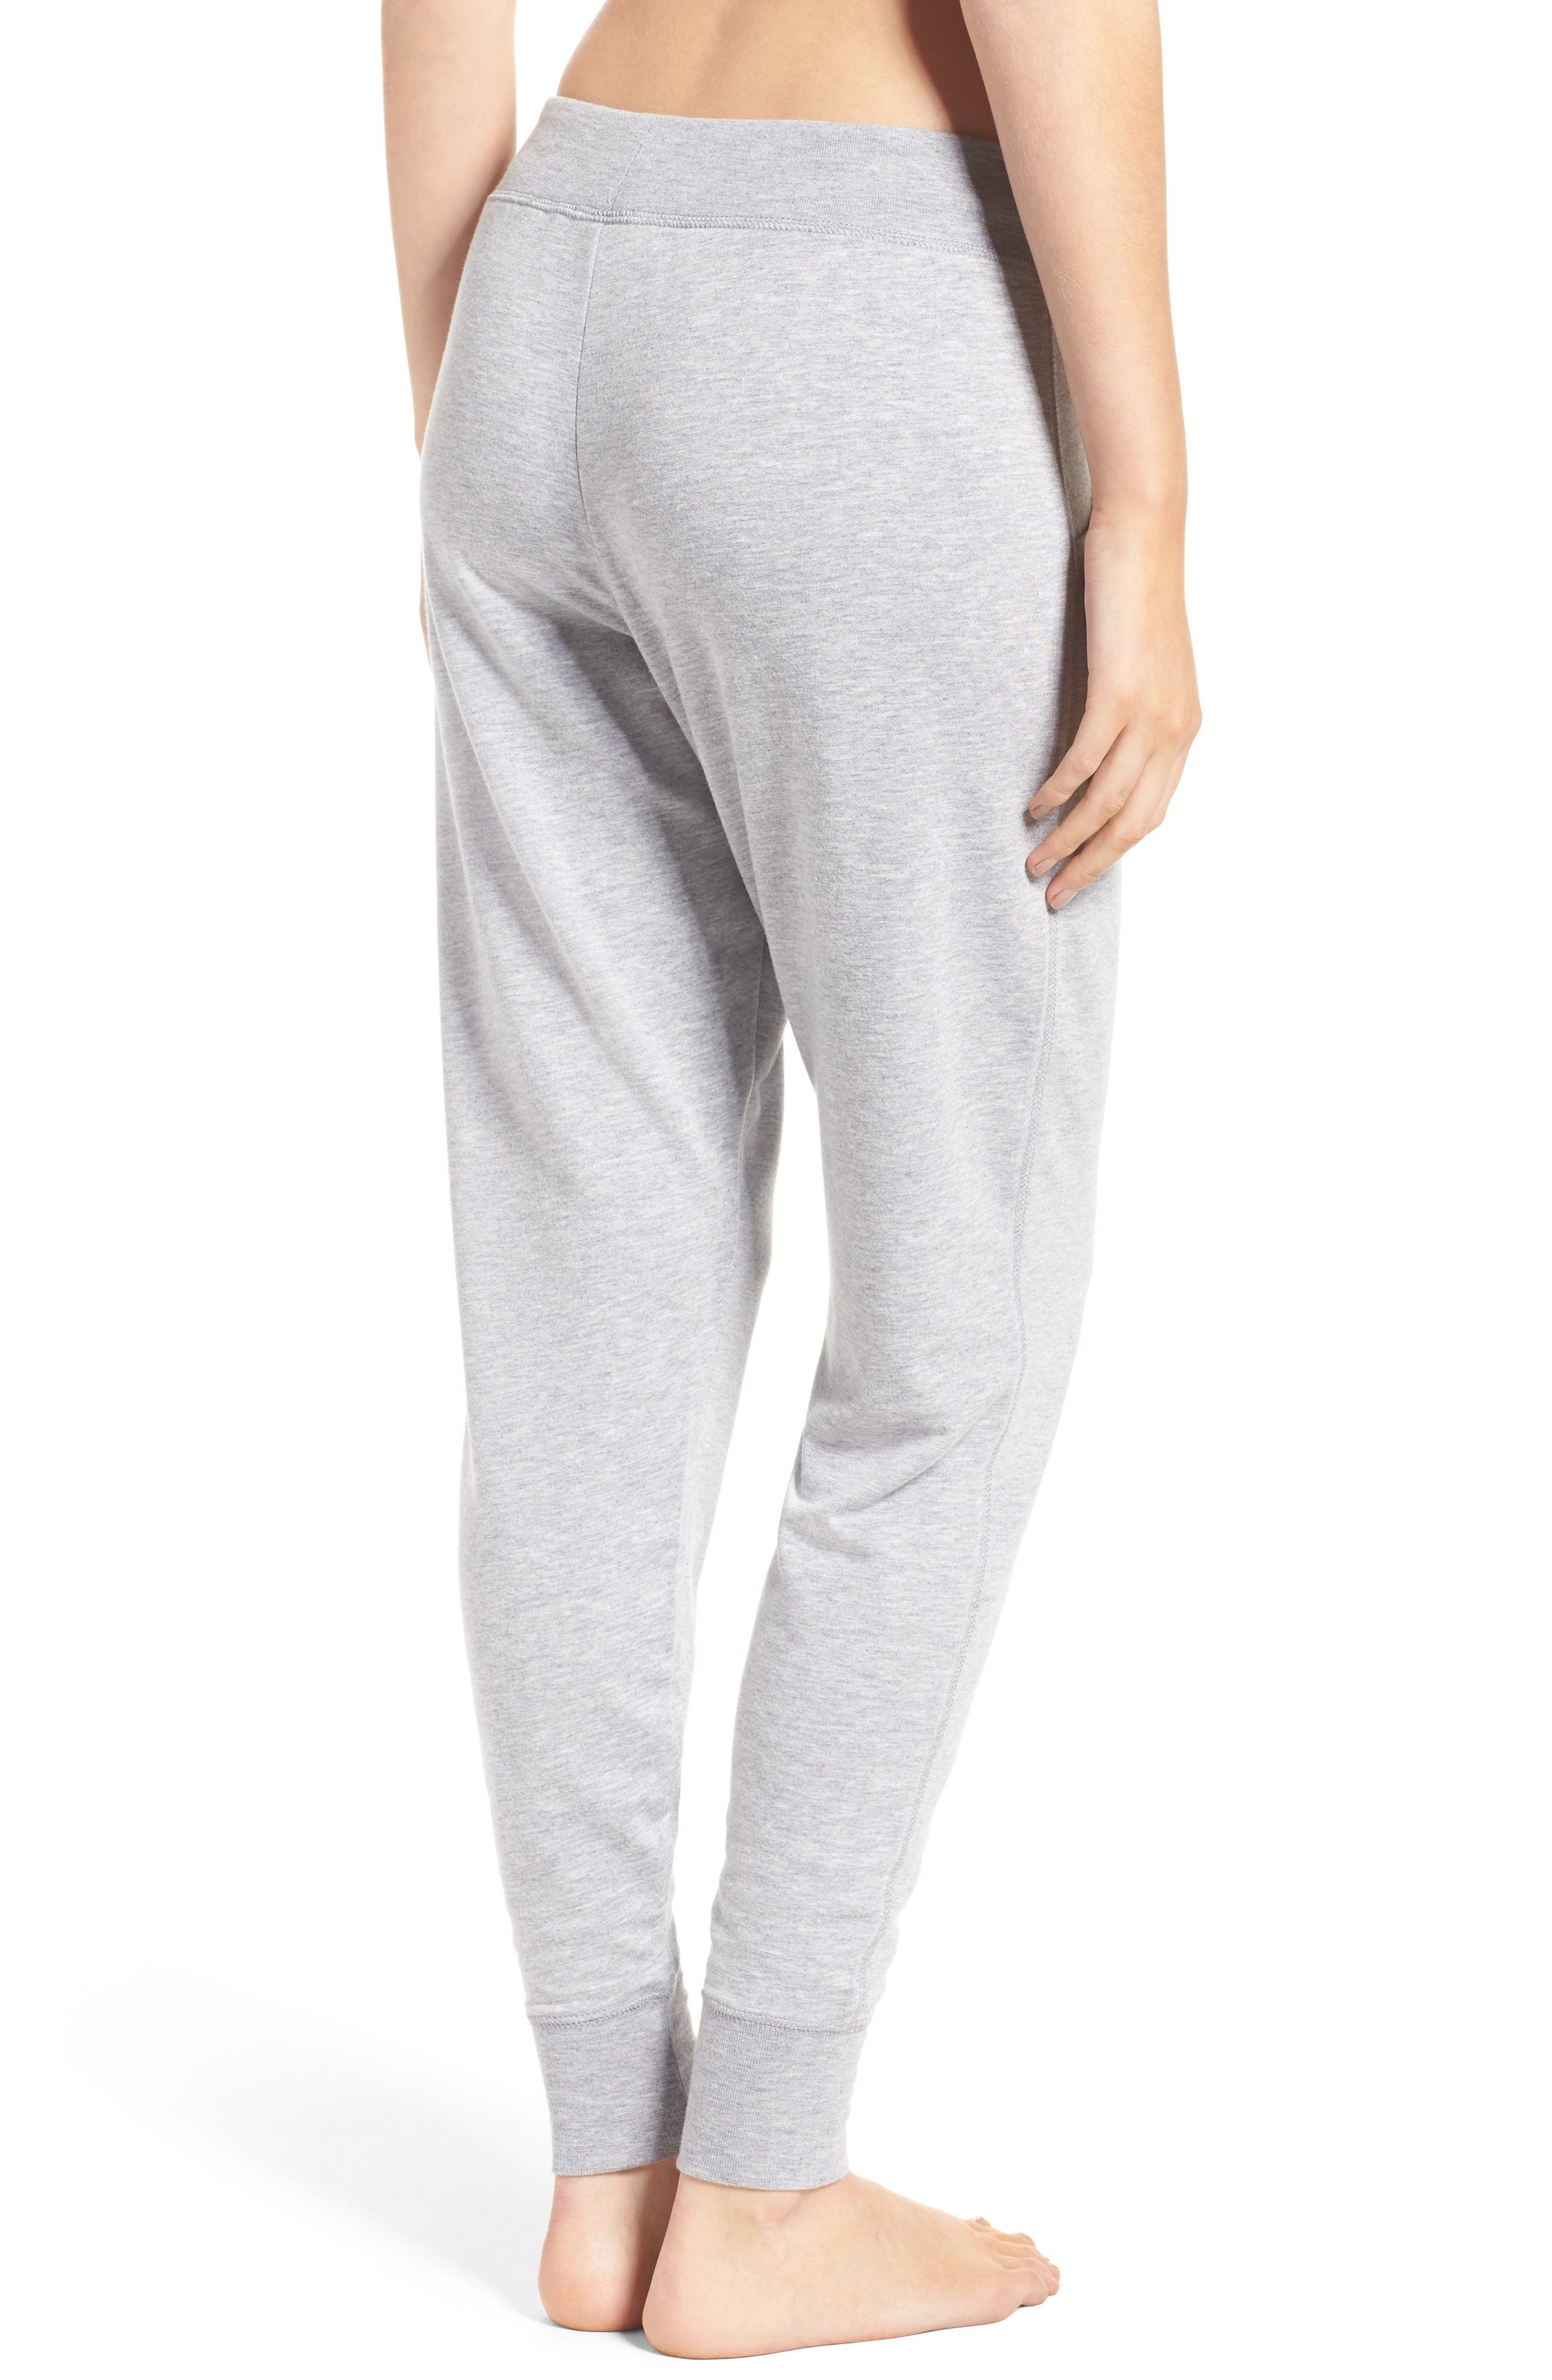 All About It Lounge Pants,                             Alternate thumbnail 13, color,